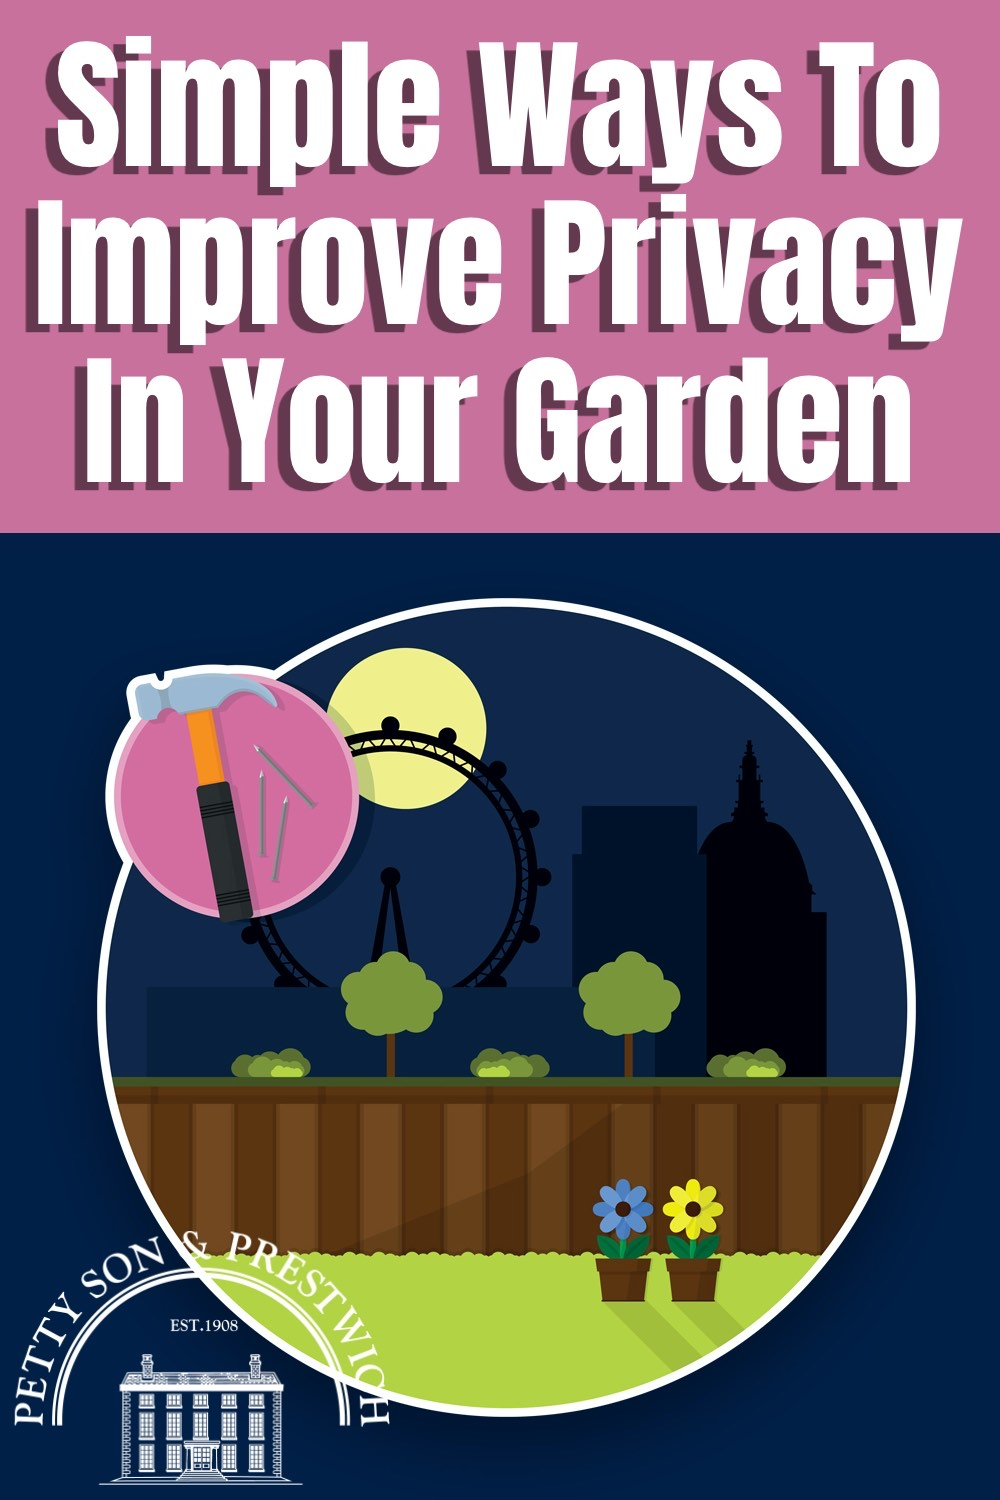 Simple Ways To Improve Privacy In Your Garden